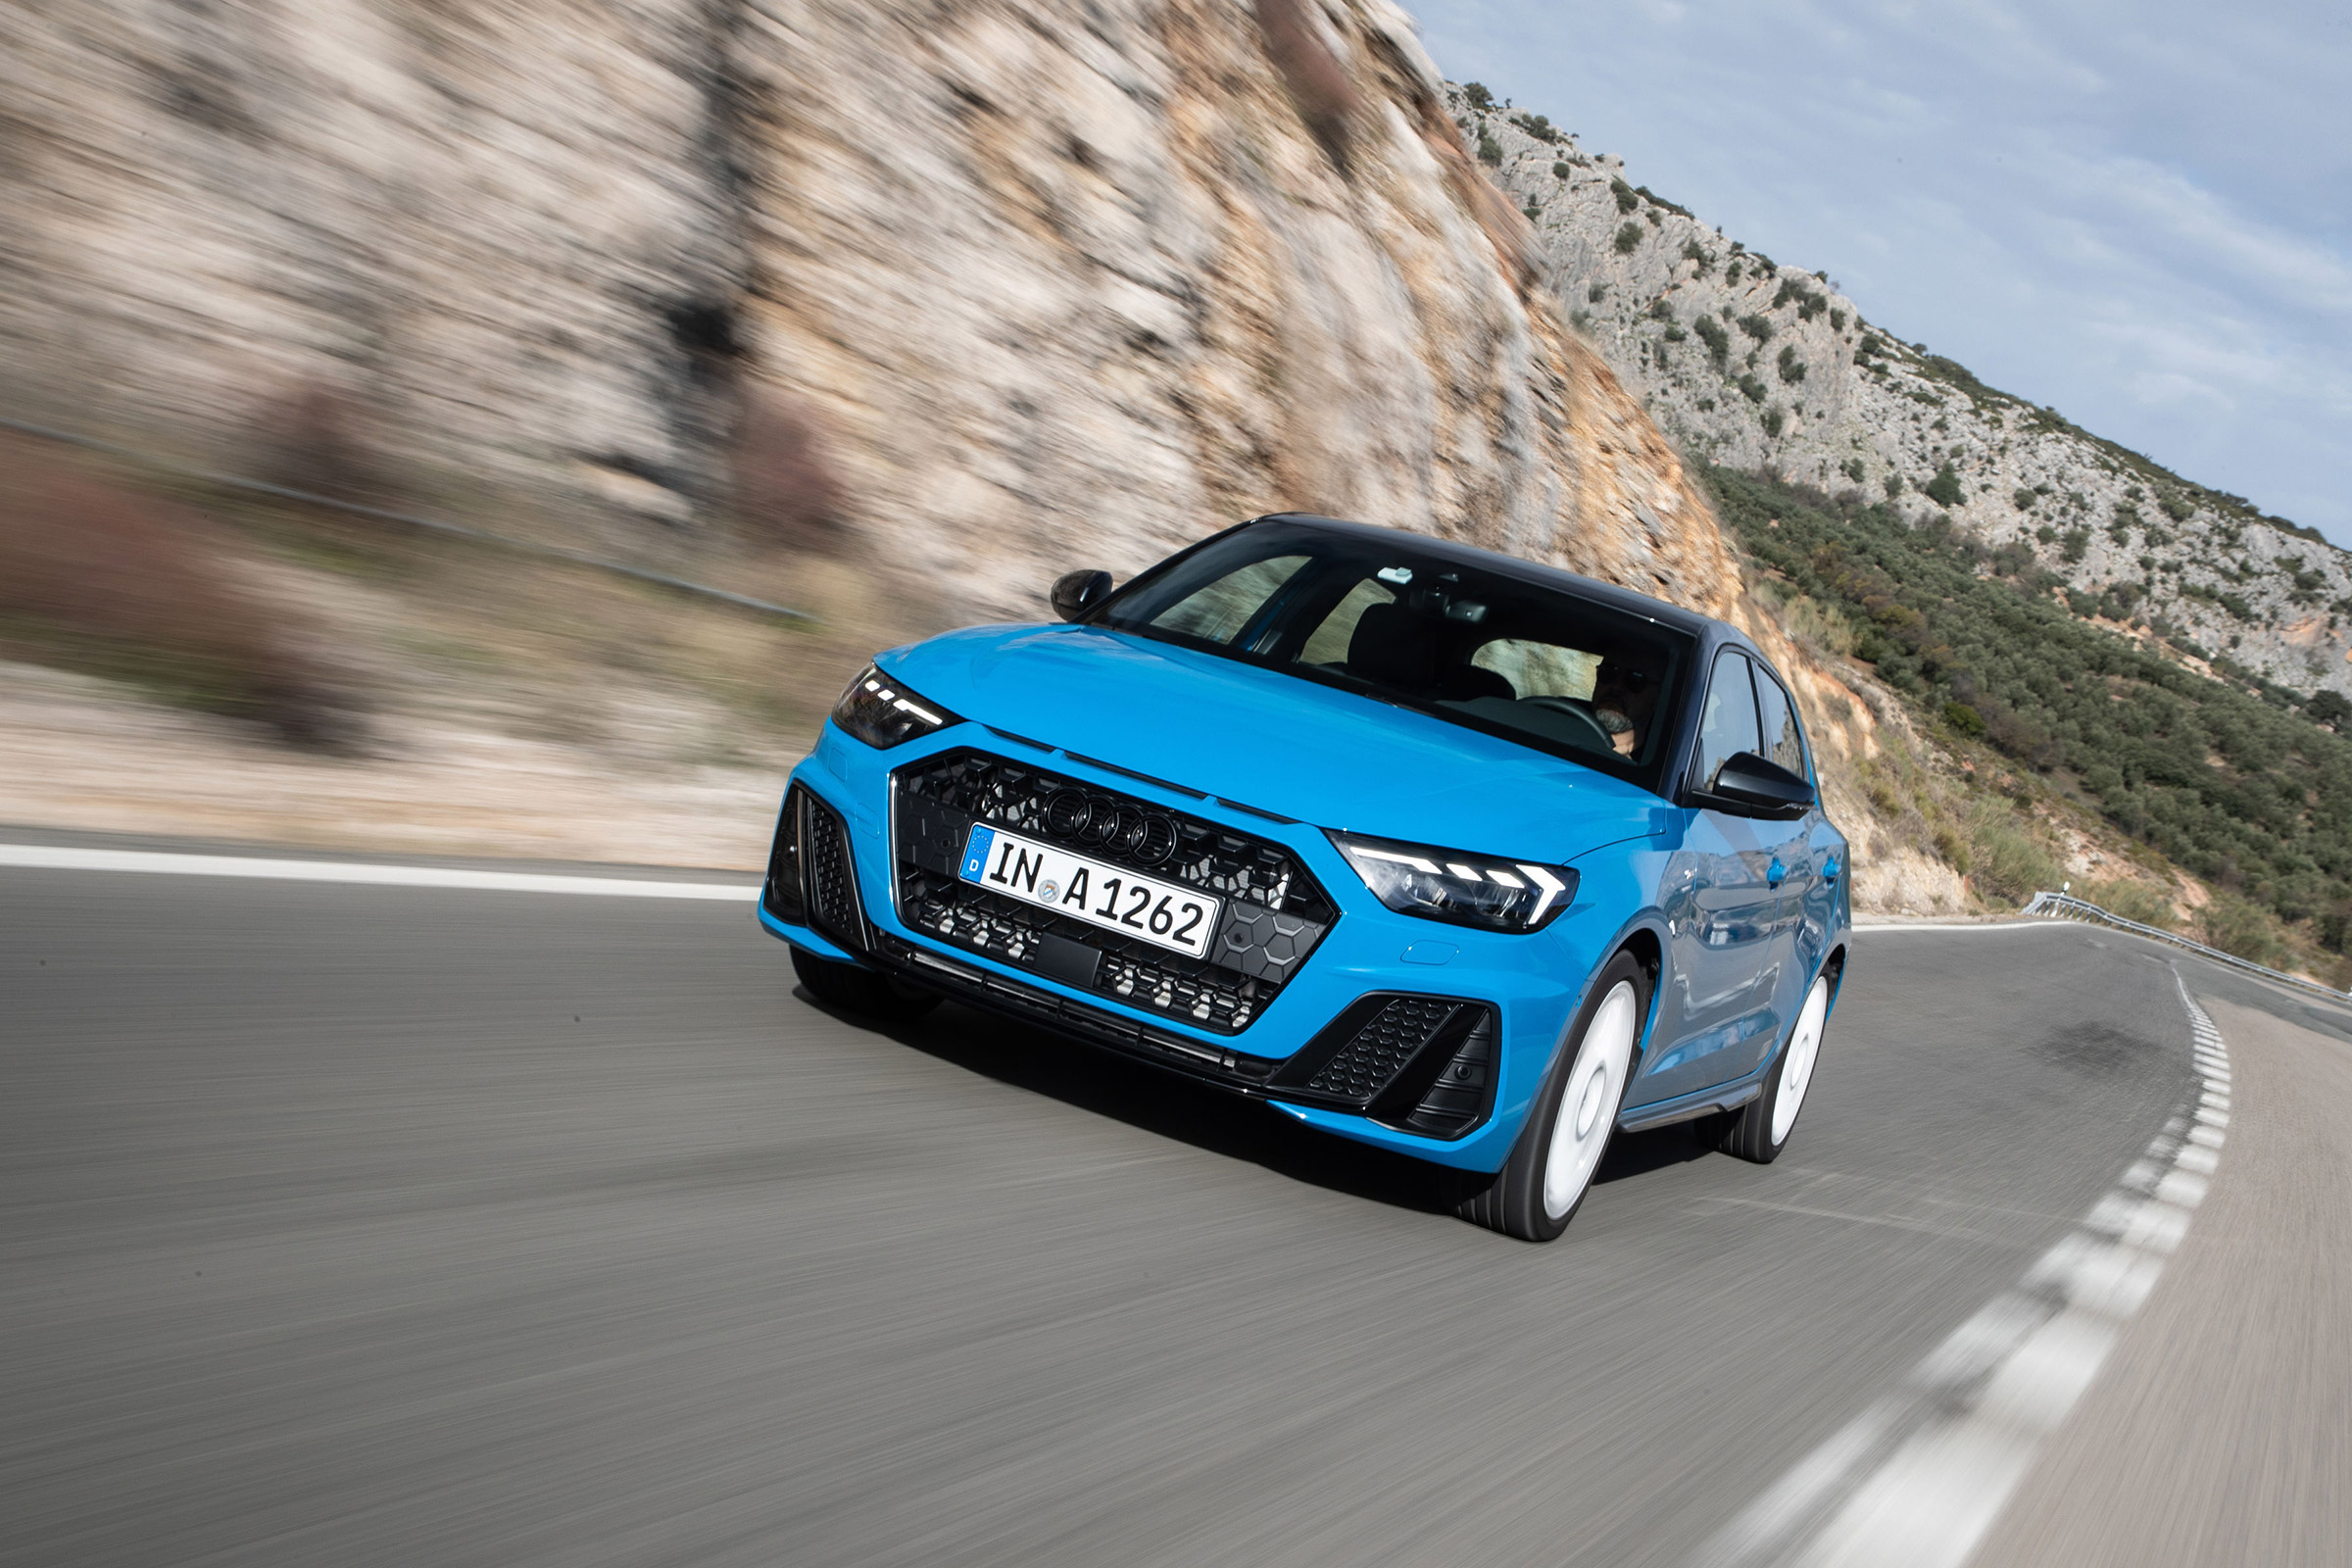 New 2018 Audi A1 S Line Competition Review A Posh Polo Gti Evo